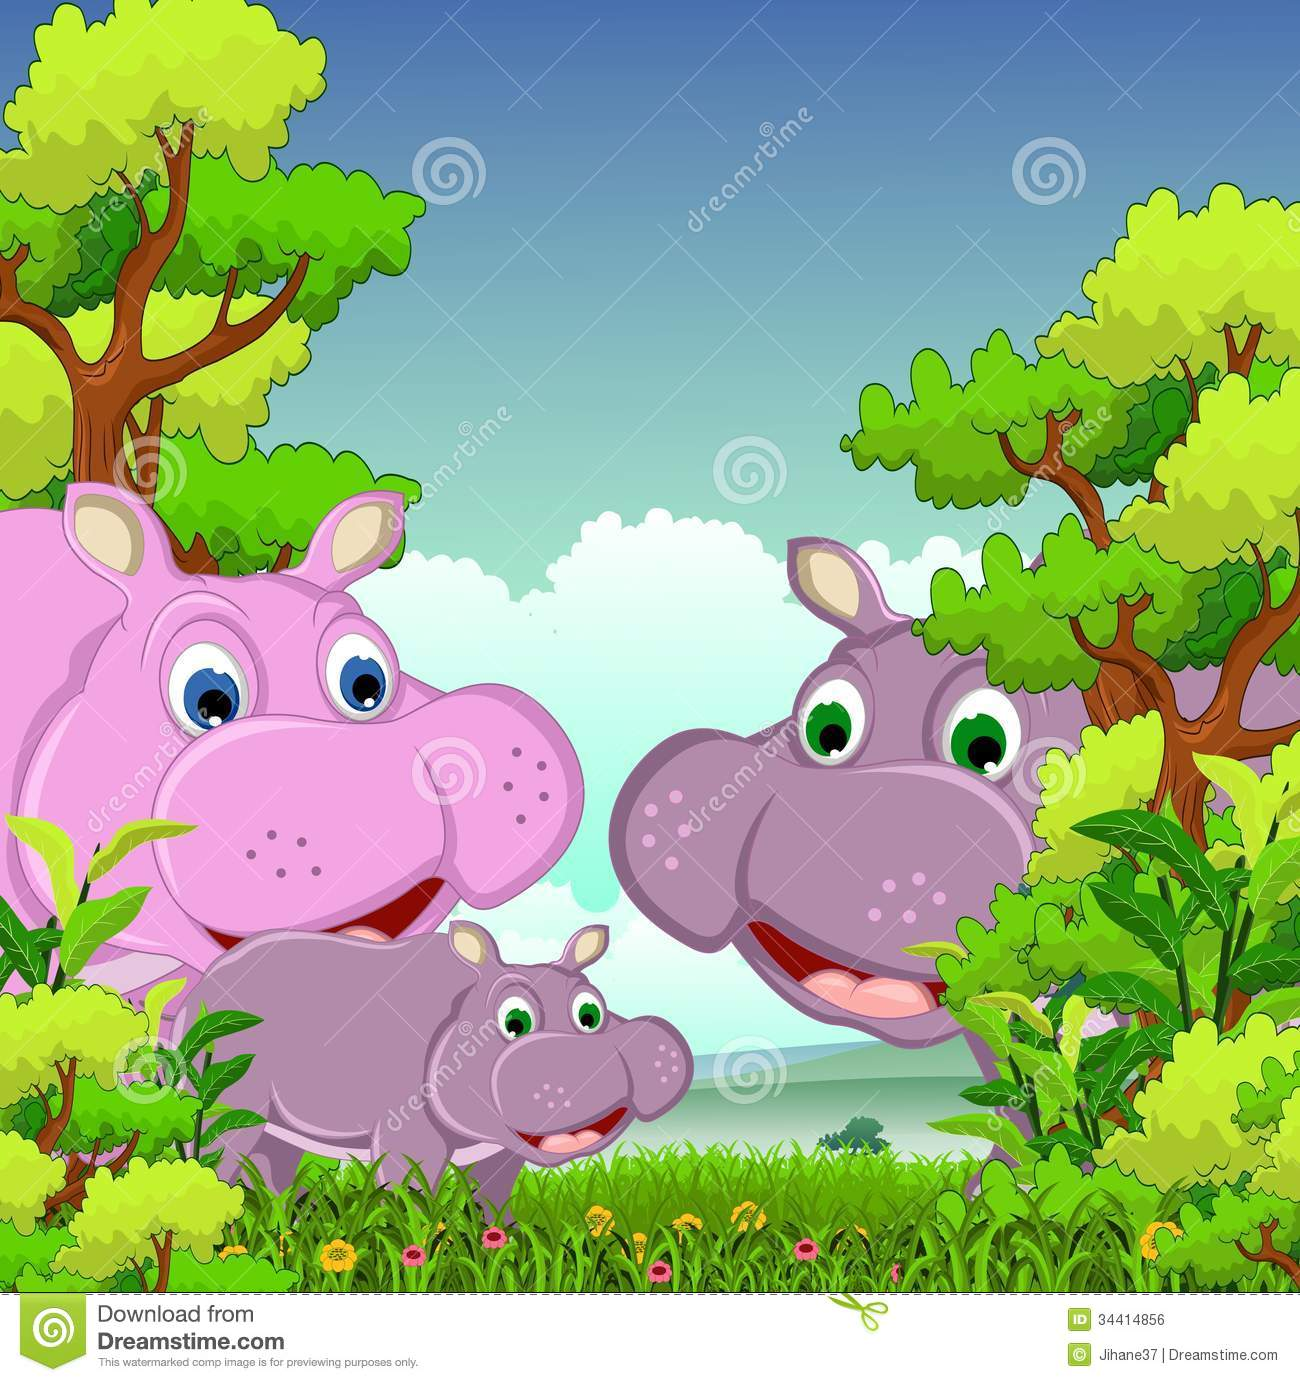 Beautiful Cute Cartoon Wallpapers Family Of Hippo Cartoon With Forest Background Royalty